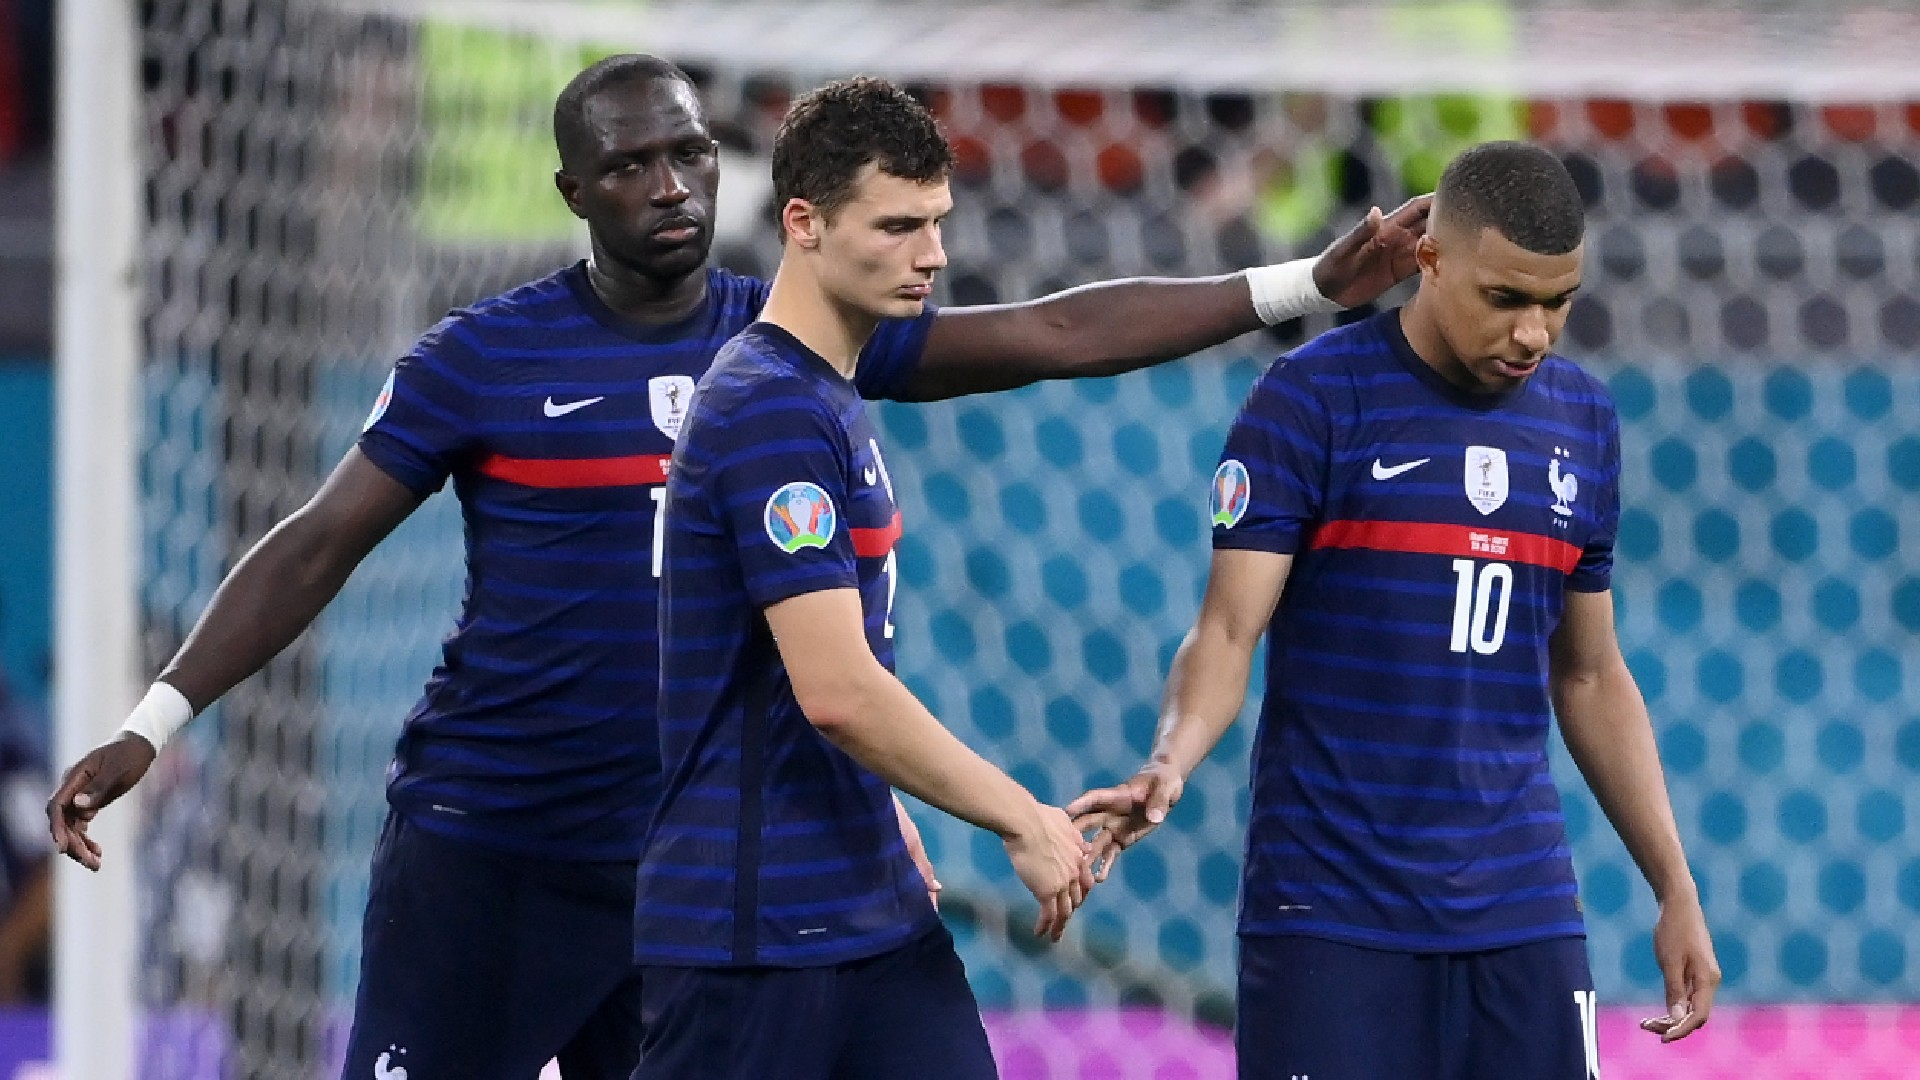 Euro 2020: Why France and Germany's elimination offers hope to 'small' nations - Kenya's Mwendwa